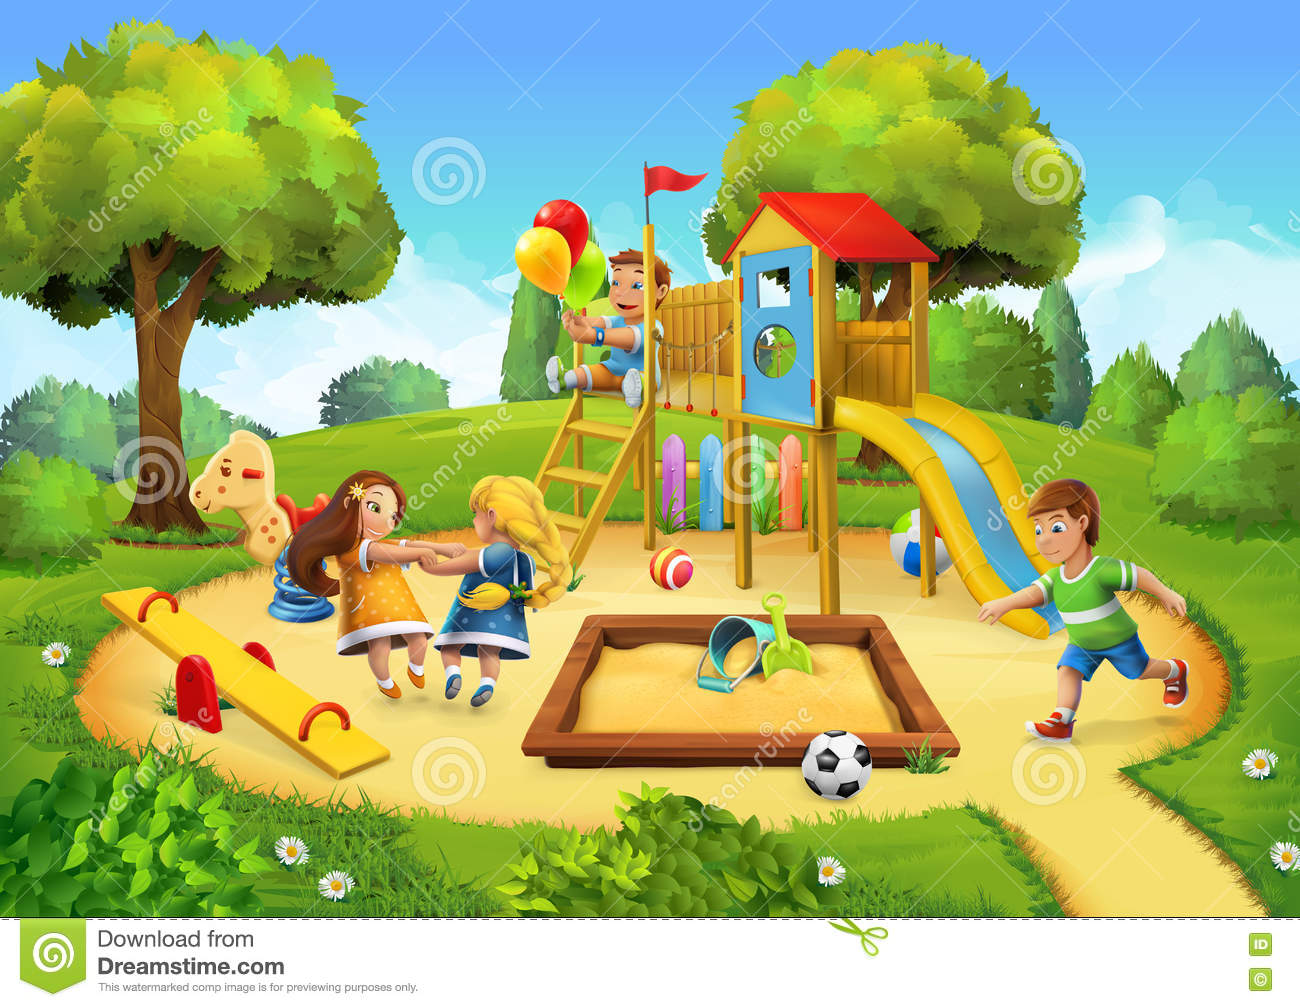 Park Playground Background Stock Vector  Illustration of